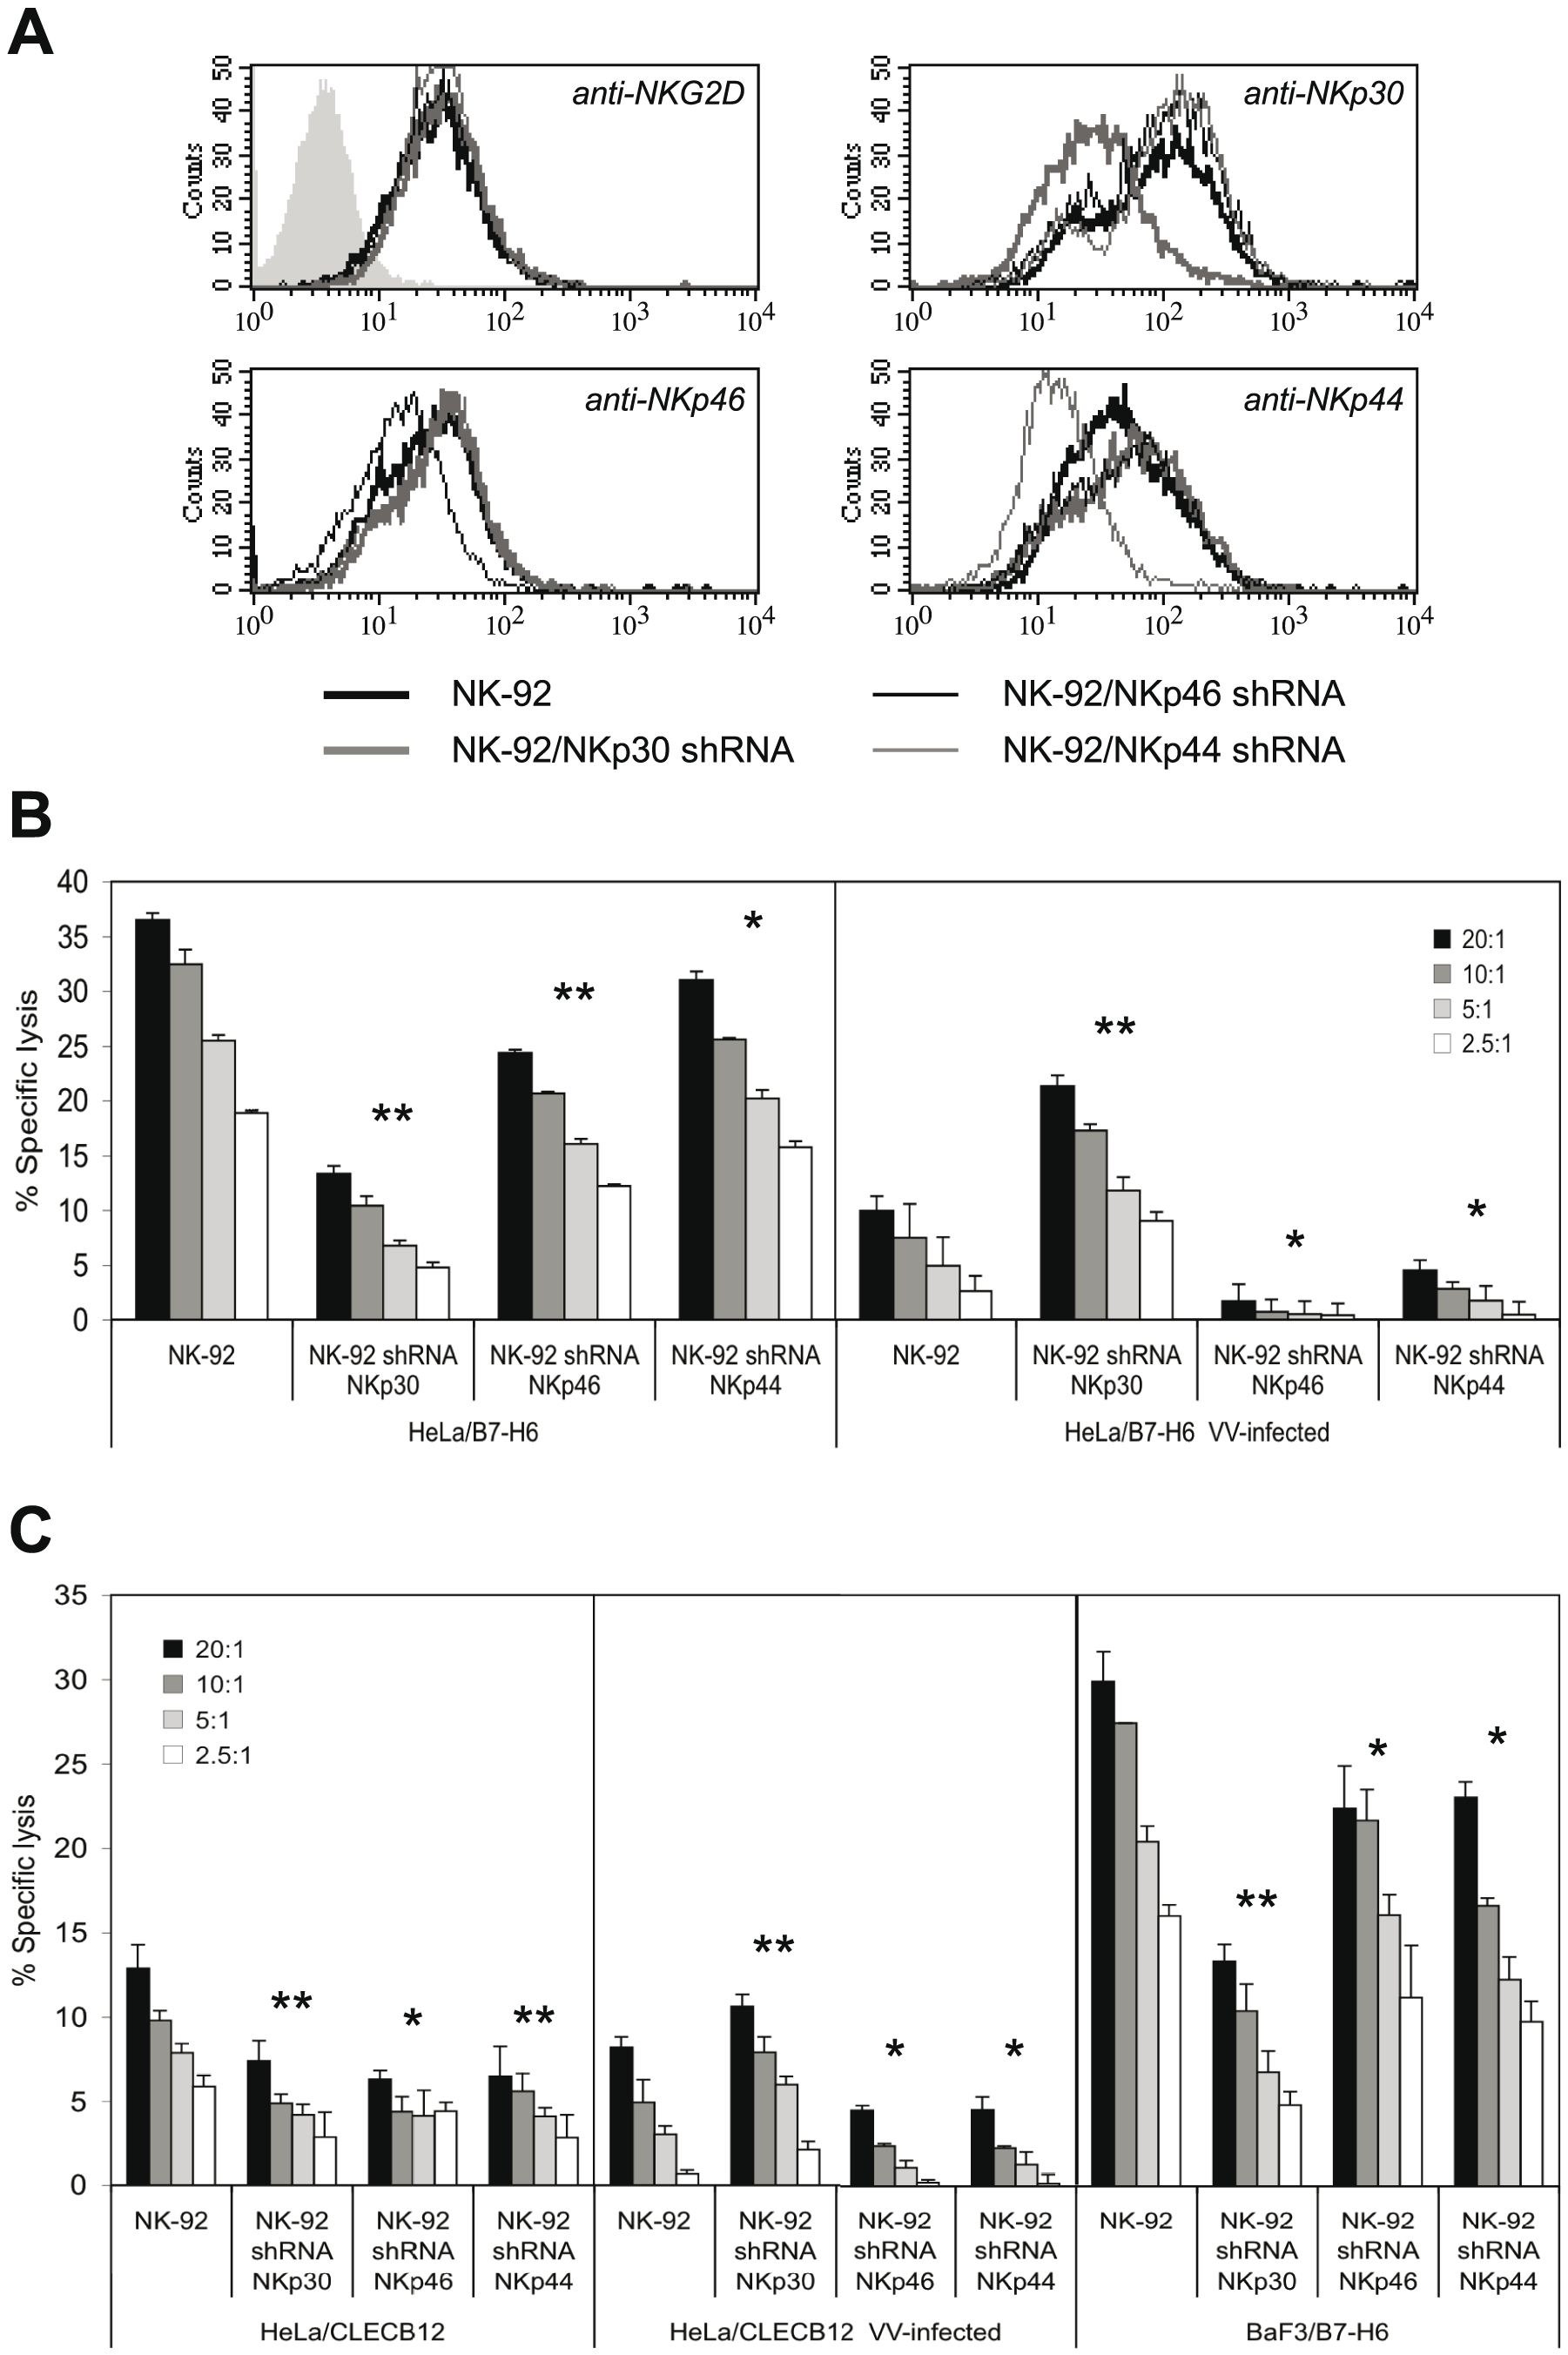 NKp30, NKp46 and NKp44 are differentially involved in the lysis of VV-infected targets.